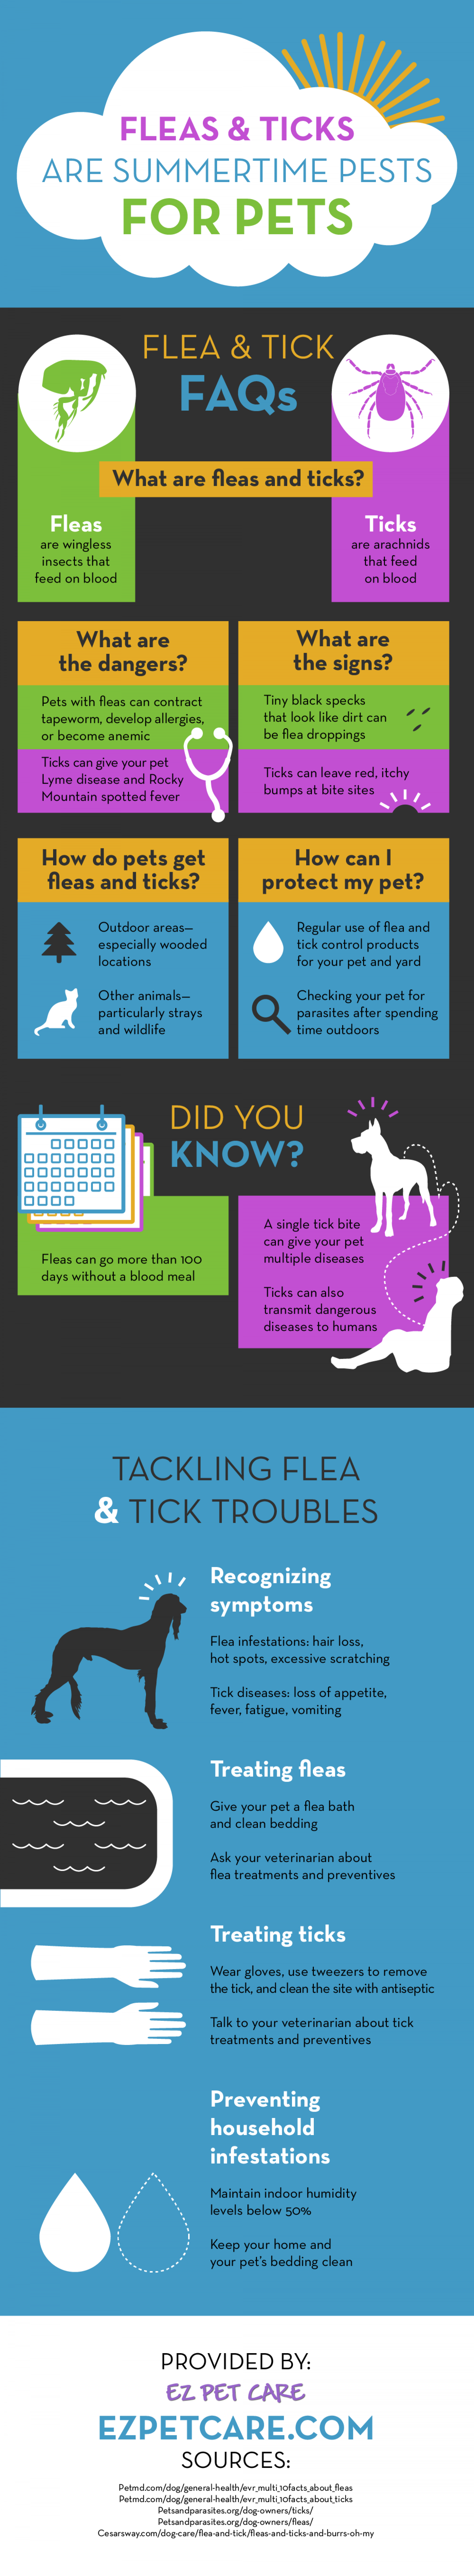 Fleas and Ticks Are Summertime Pests for Pets Infographic